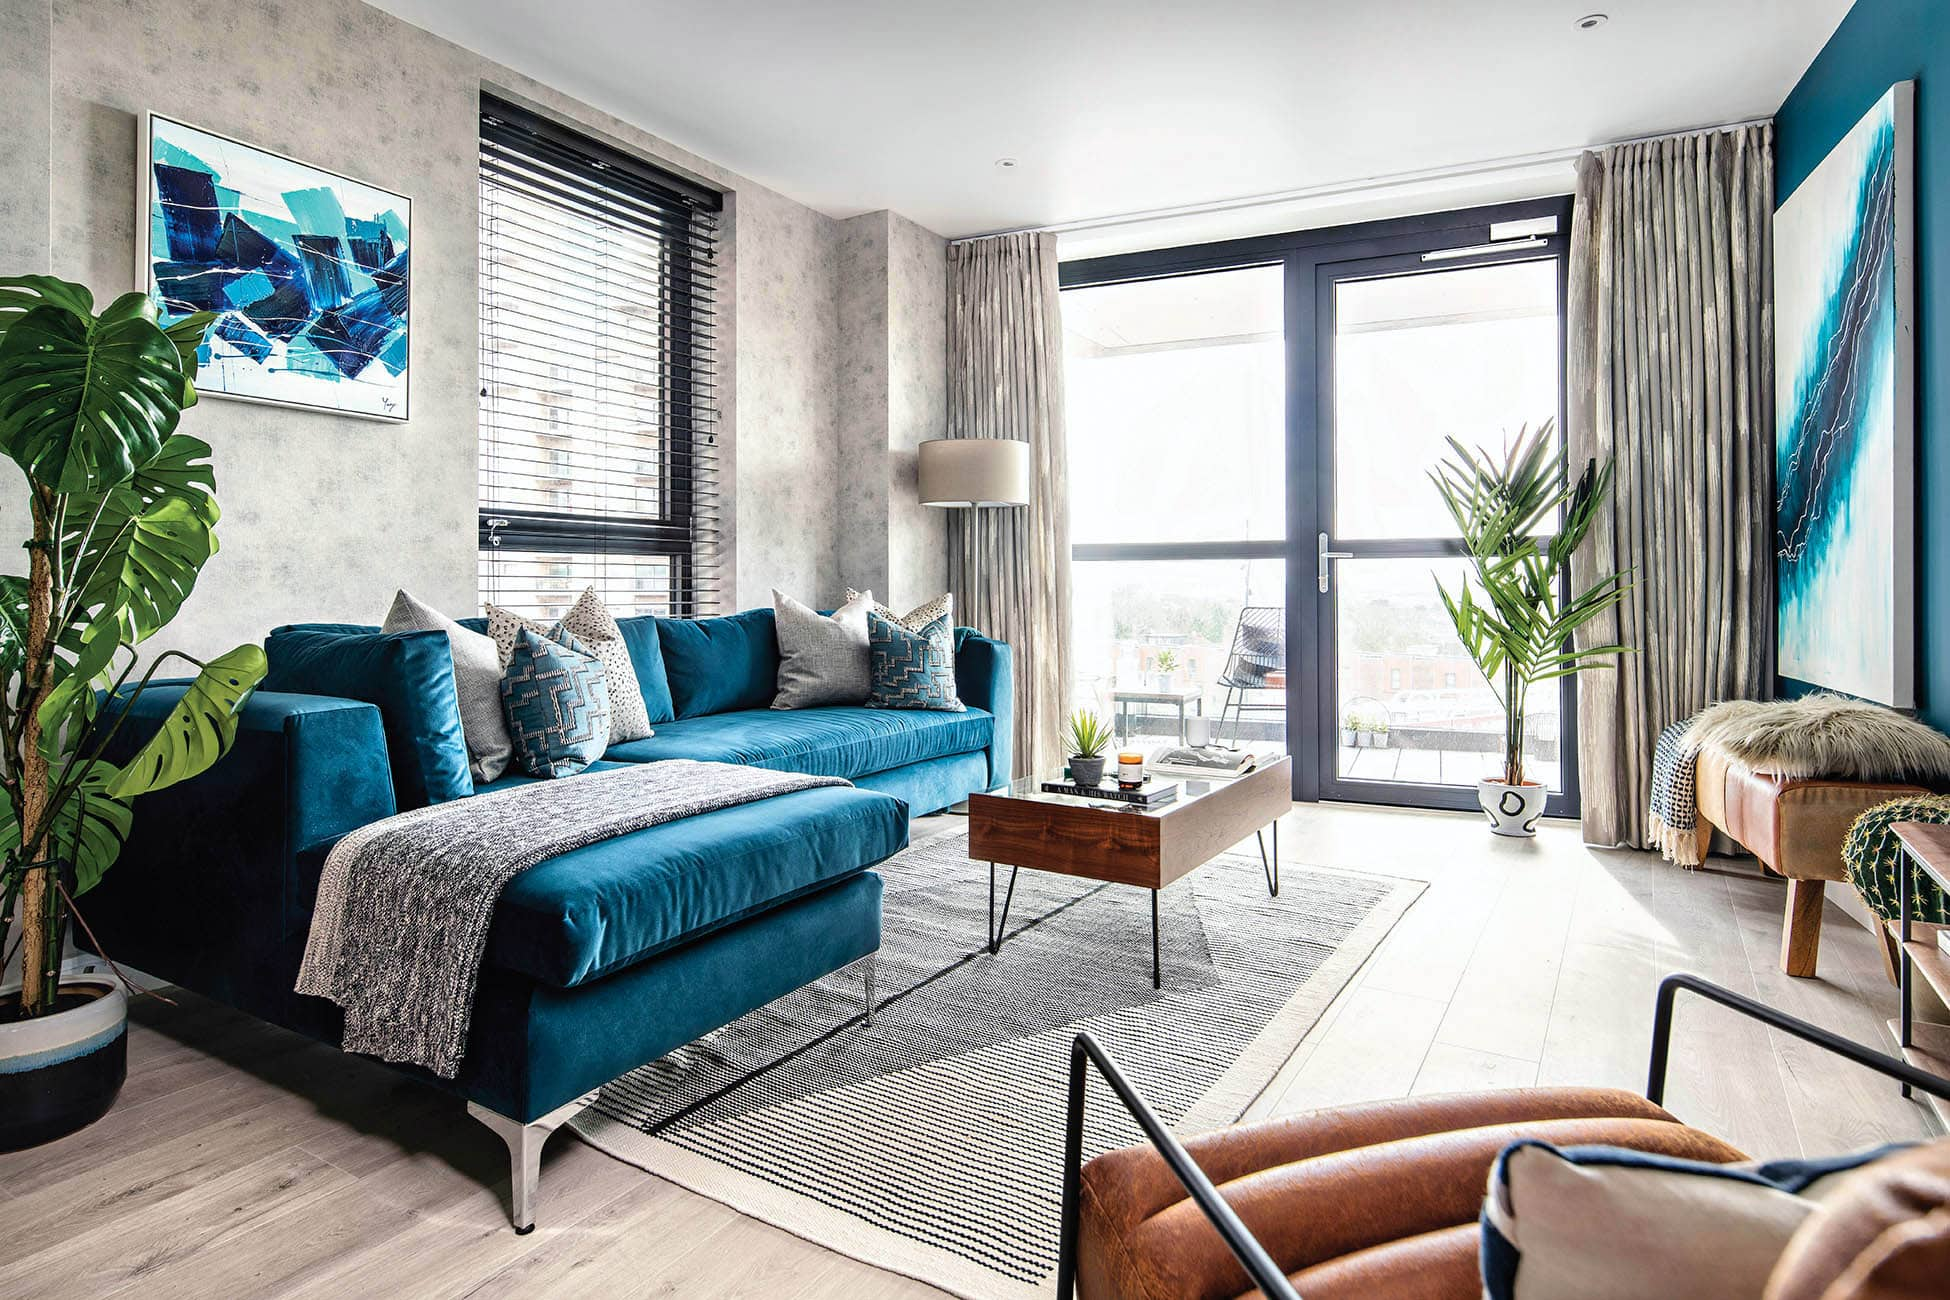 Williamson Heights by Peabody - Shared Ownership homes available on Share to Buy